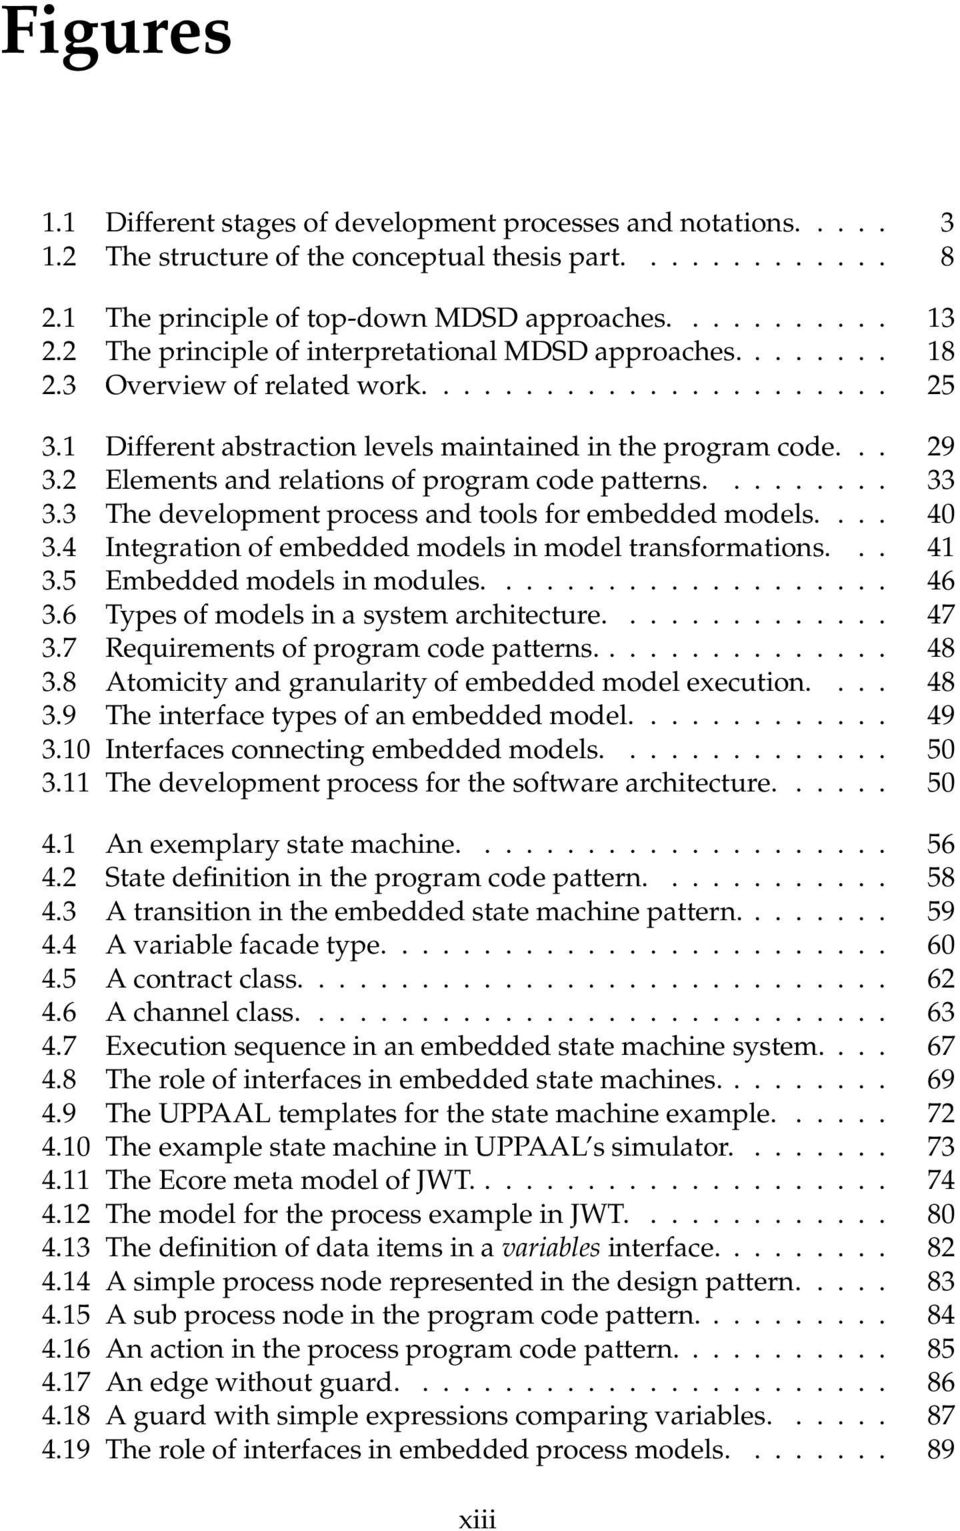 2 Elements andrelations of programcodepatterns......... 33 3.3 The development process and tools for embedded models.... 40 3.4 Integration of embedded models in model transformations... 41 3.